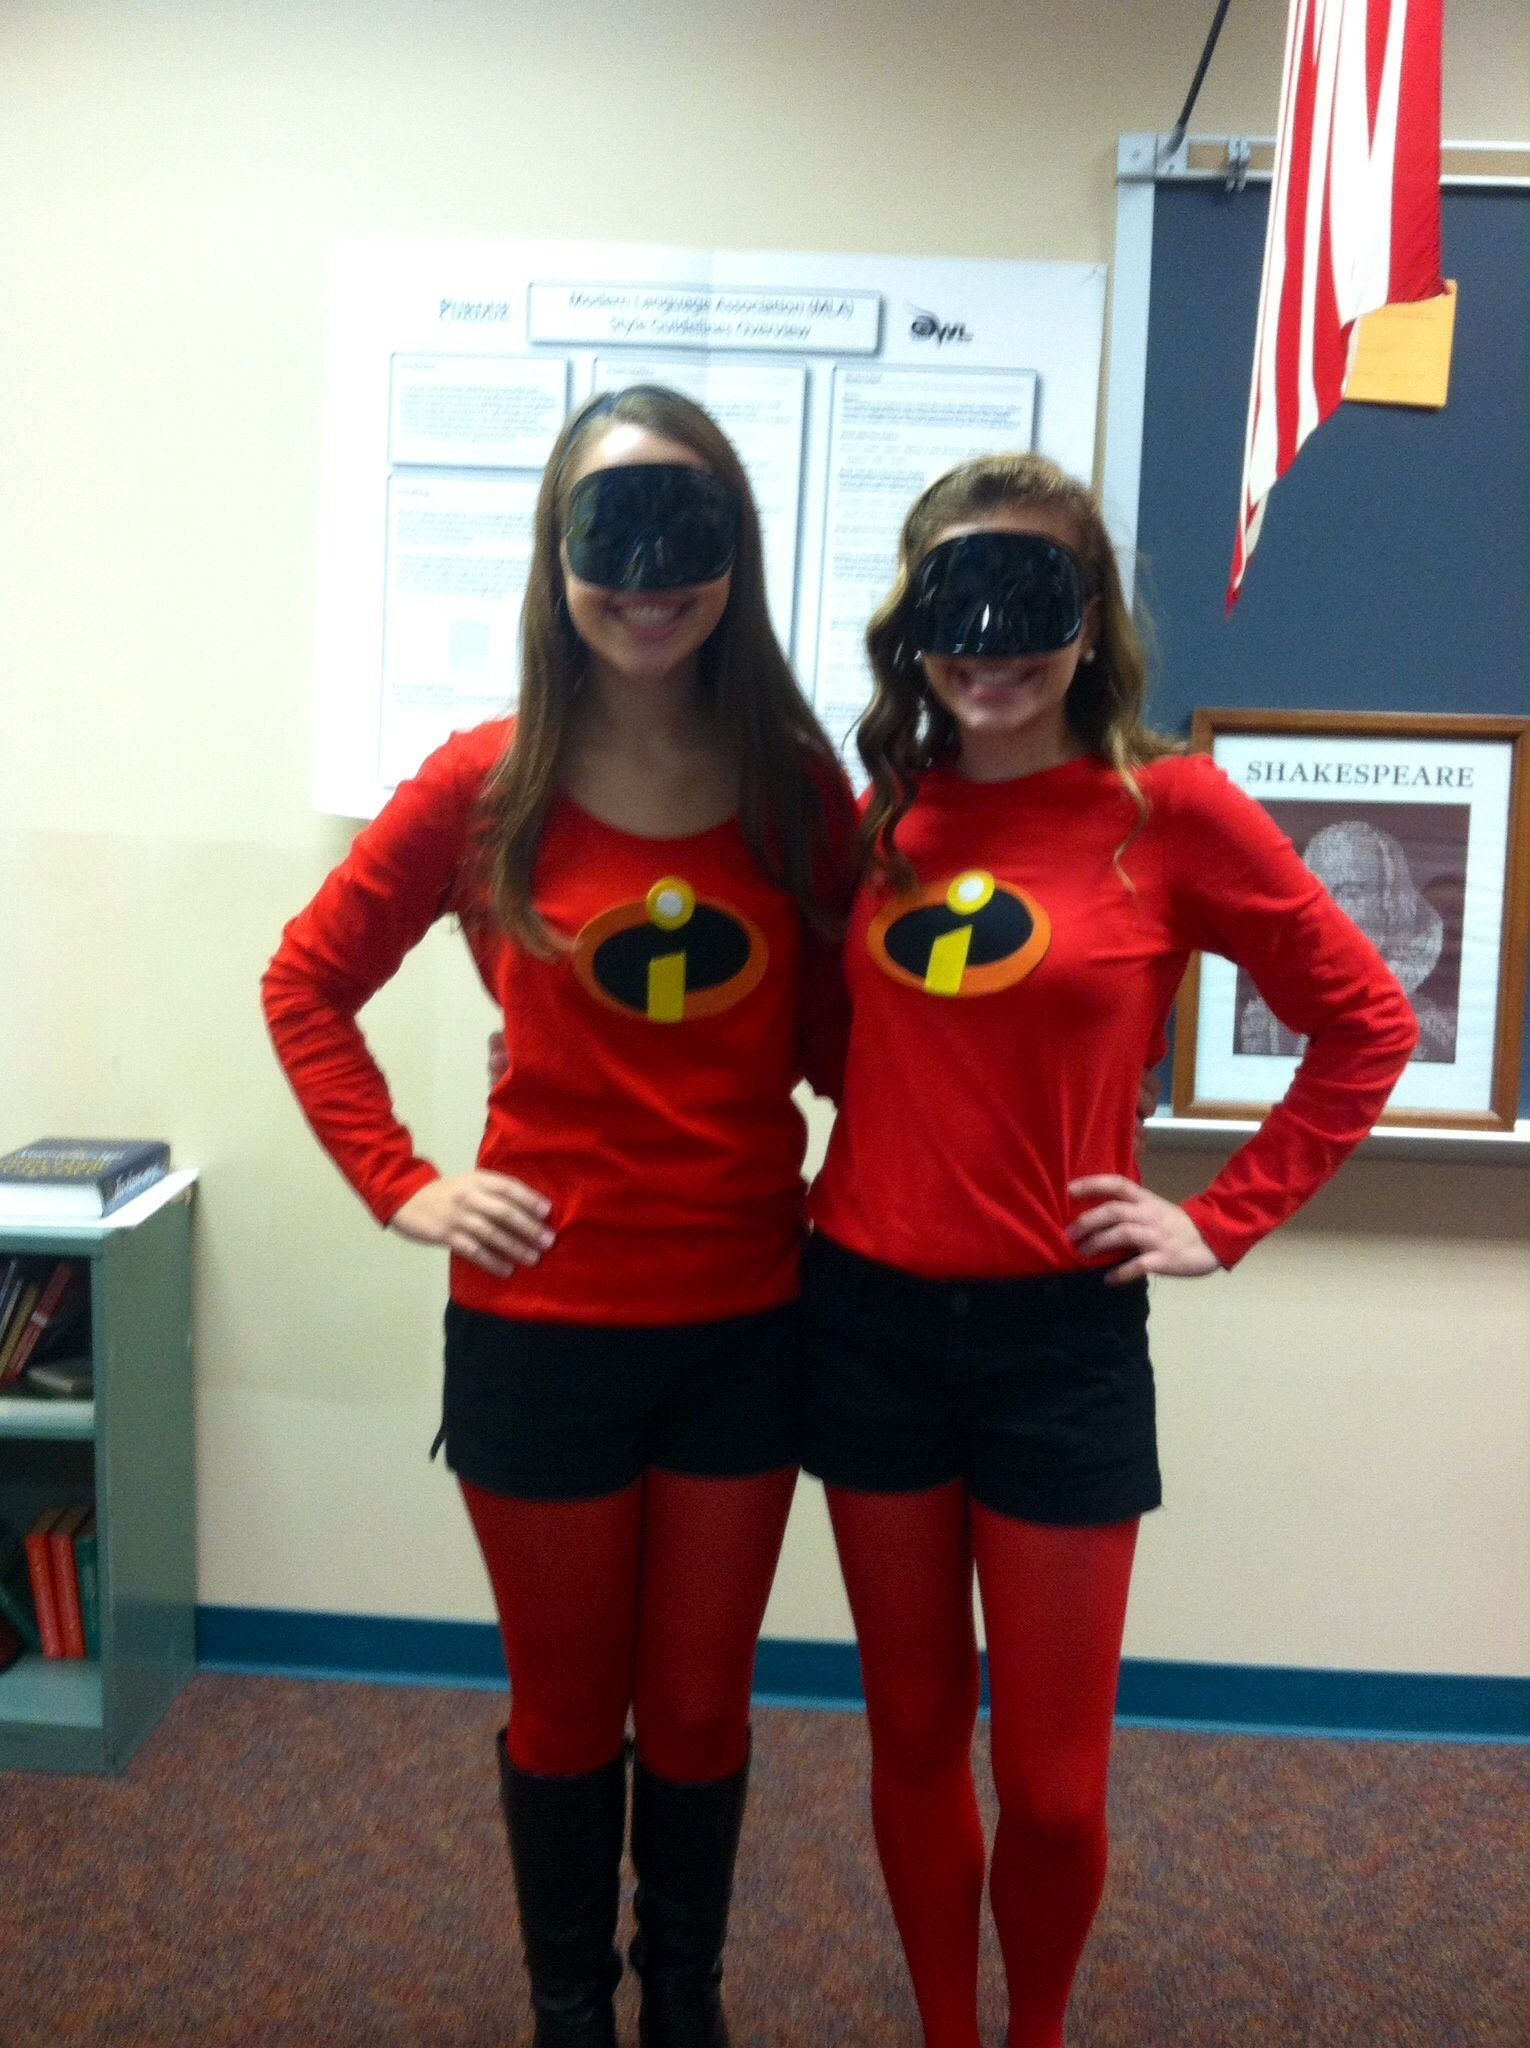 10 Cute Superhero Day Ideas At School super hero day diy incredibles outfit ideas for amy pinterest 2020